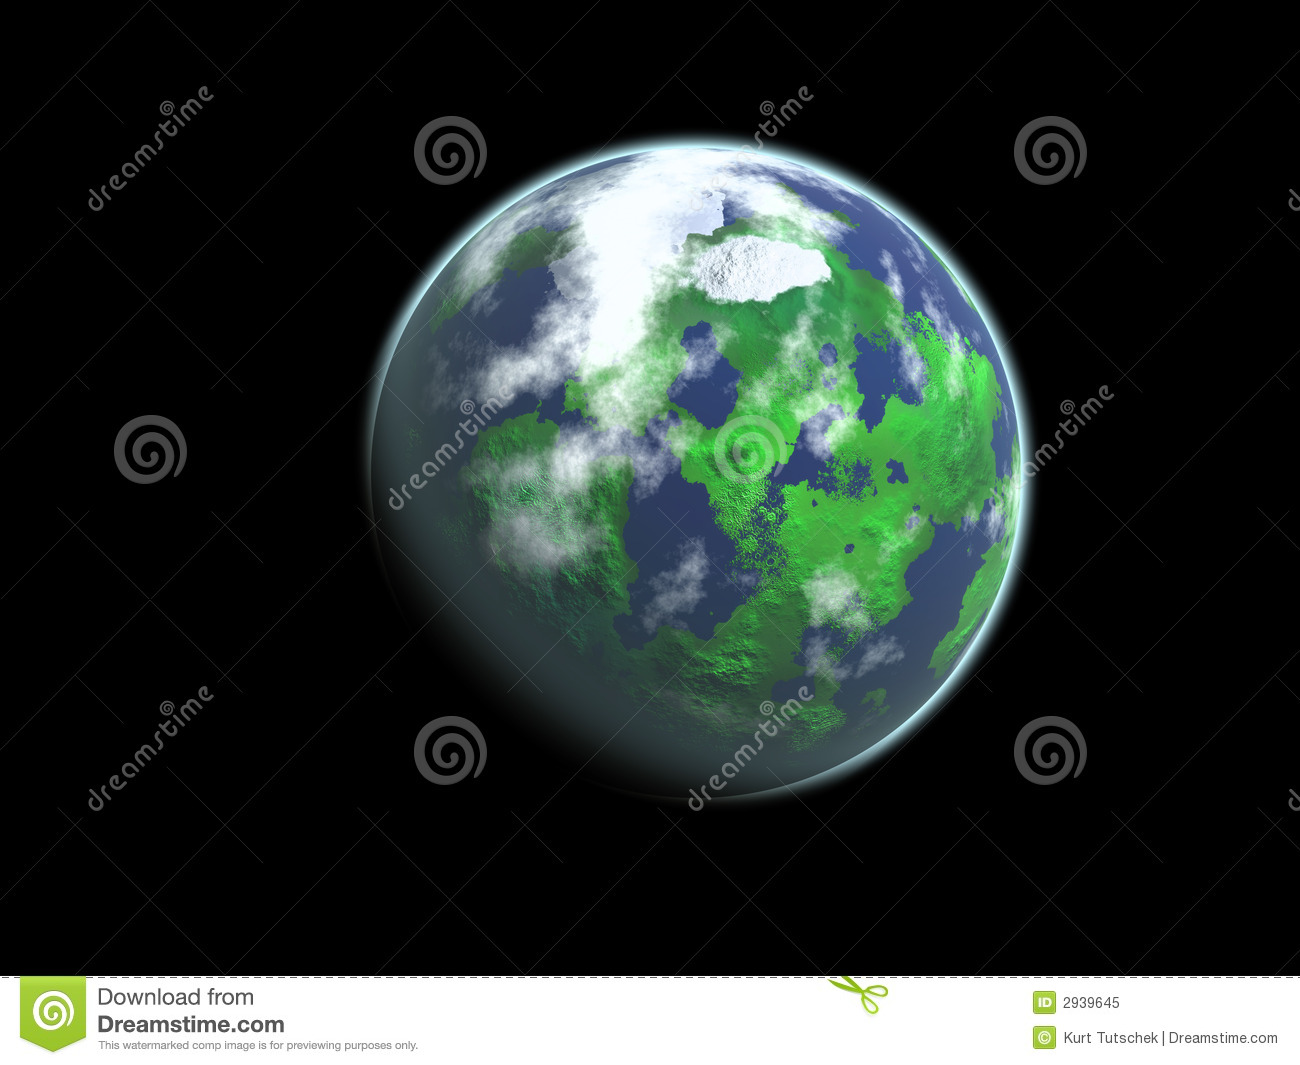 Green planet with clouds, land and water against black background.